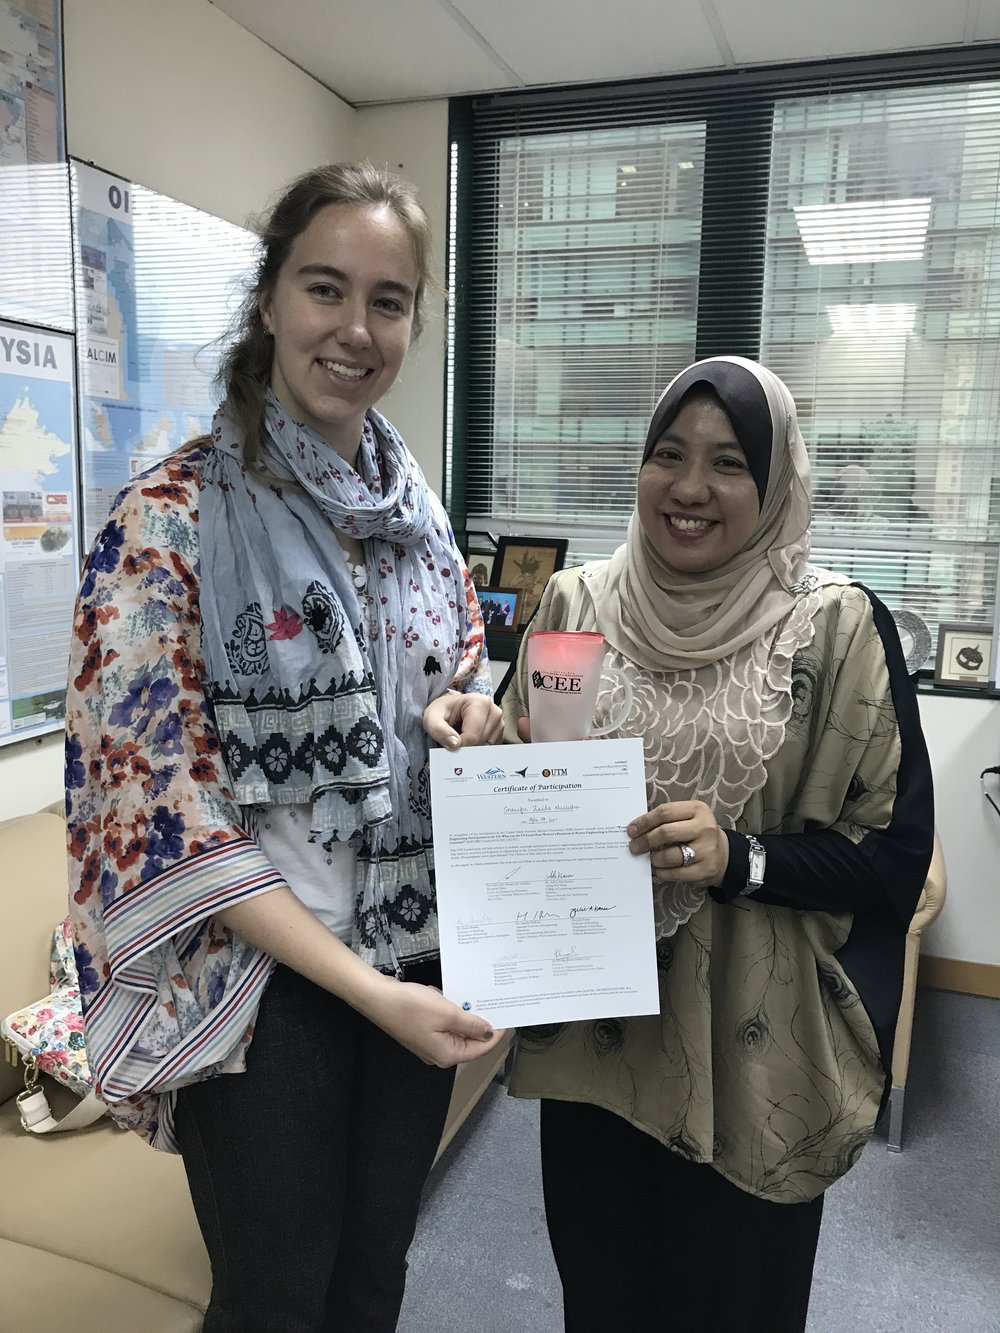 Presenting the certificate of participation to a practicing engineer participant in Kuala Lumpur.